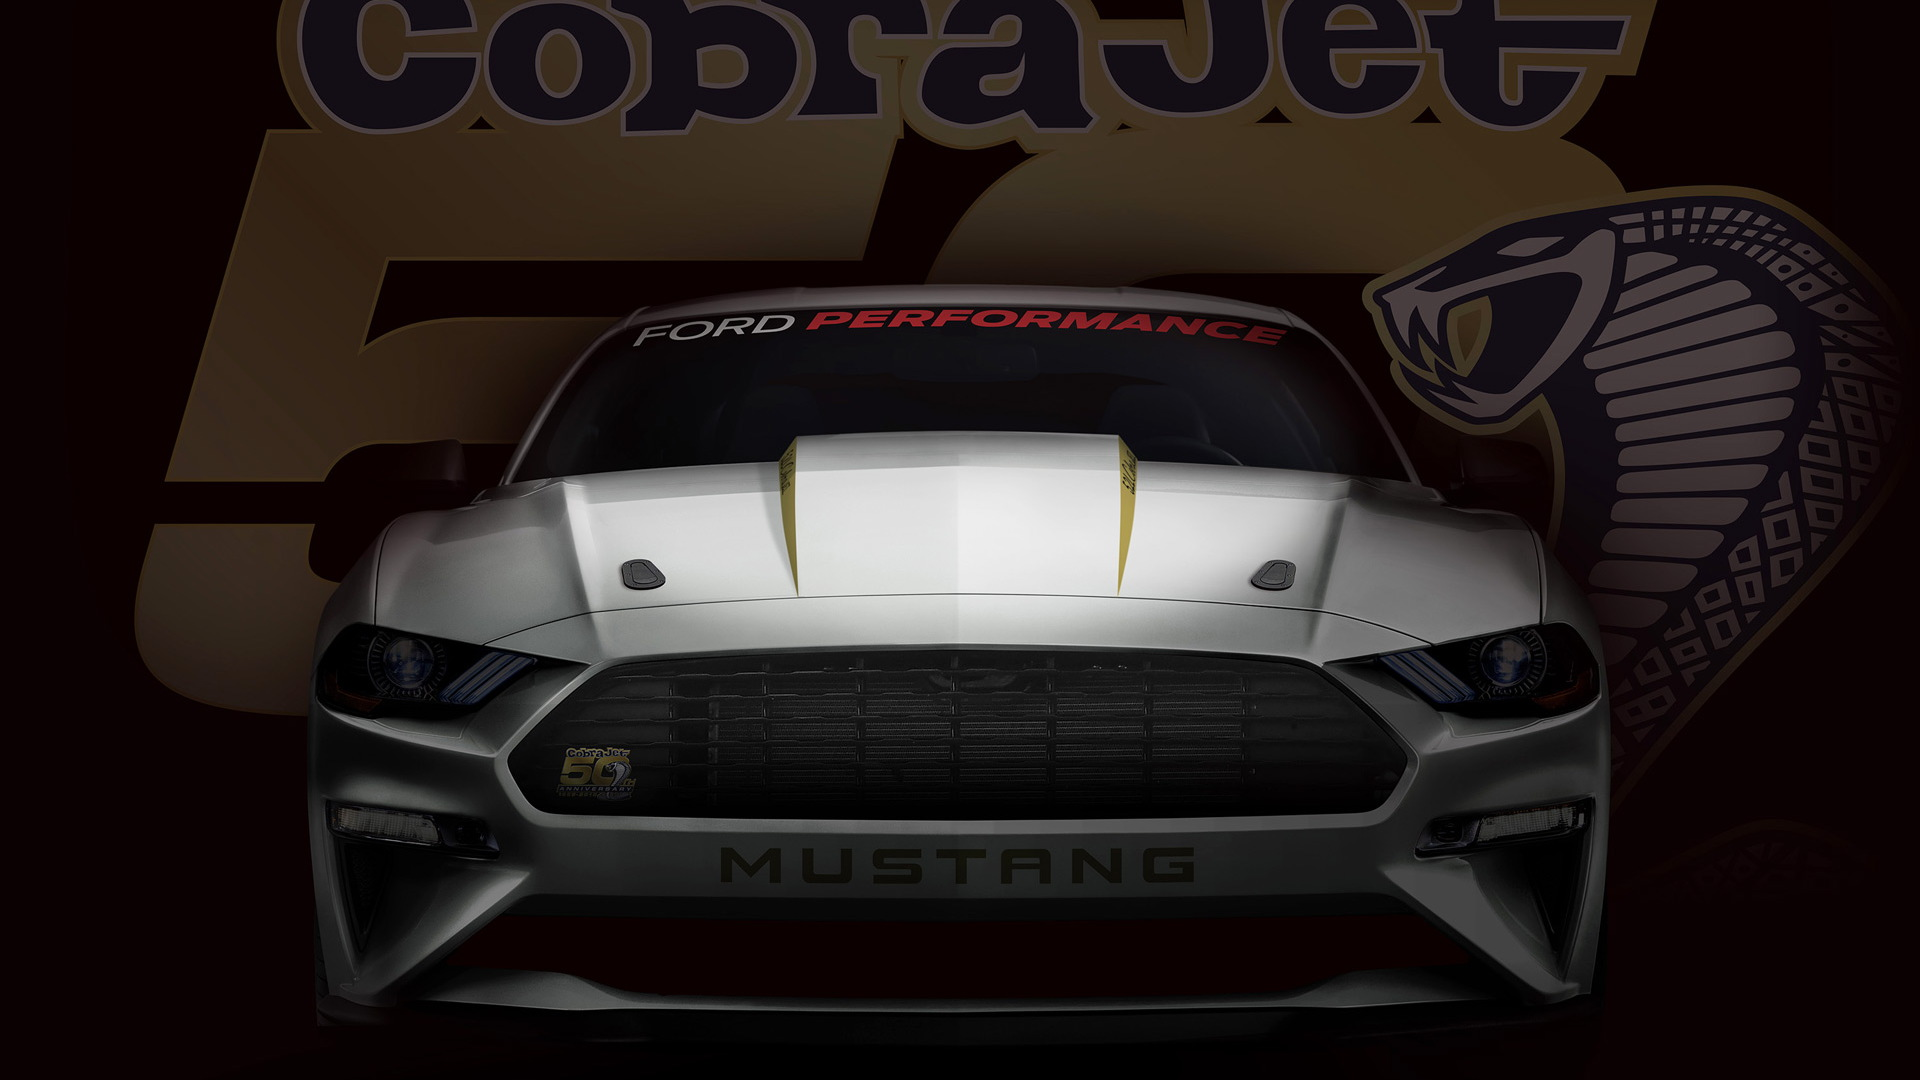 Teaser for 2018 Ford Mustang Cobra Jet drag race car